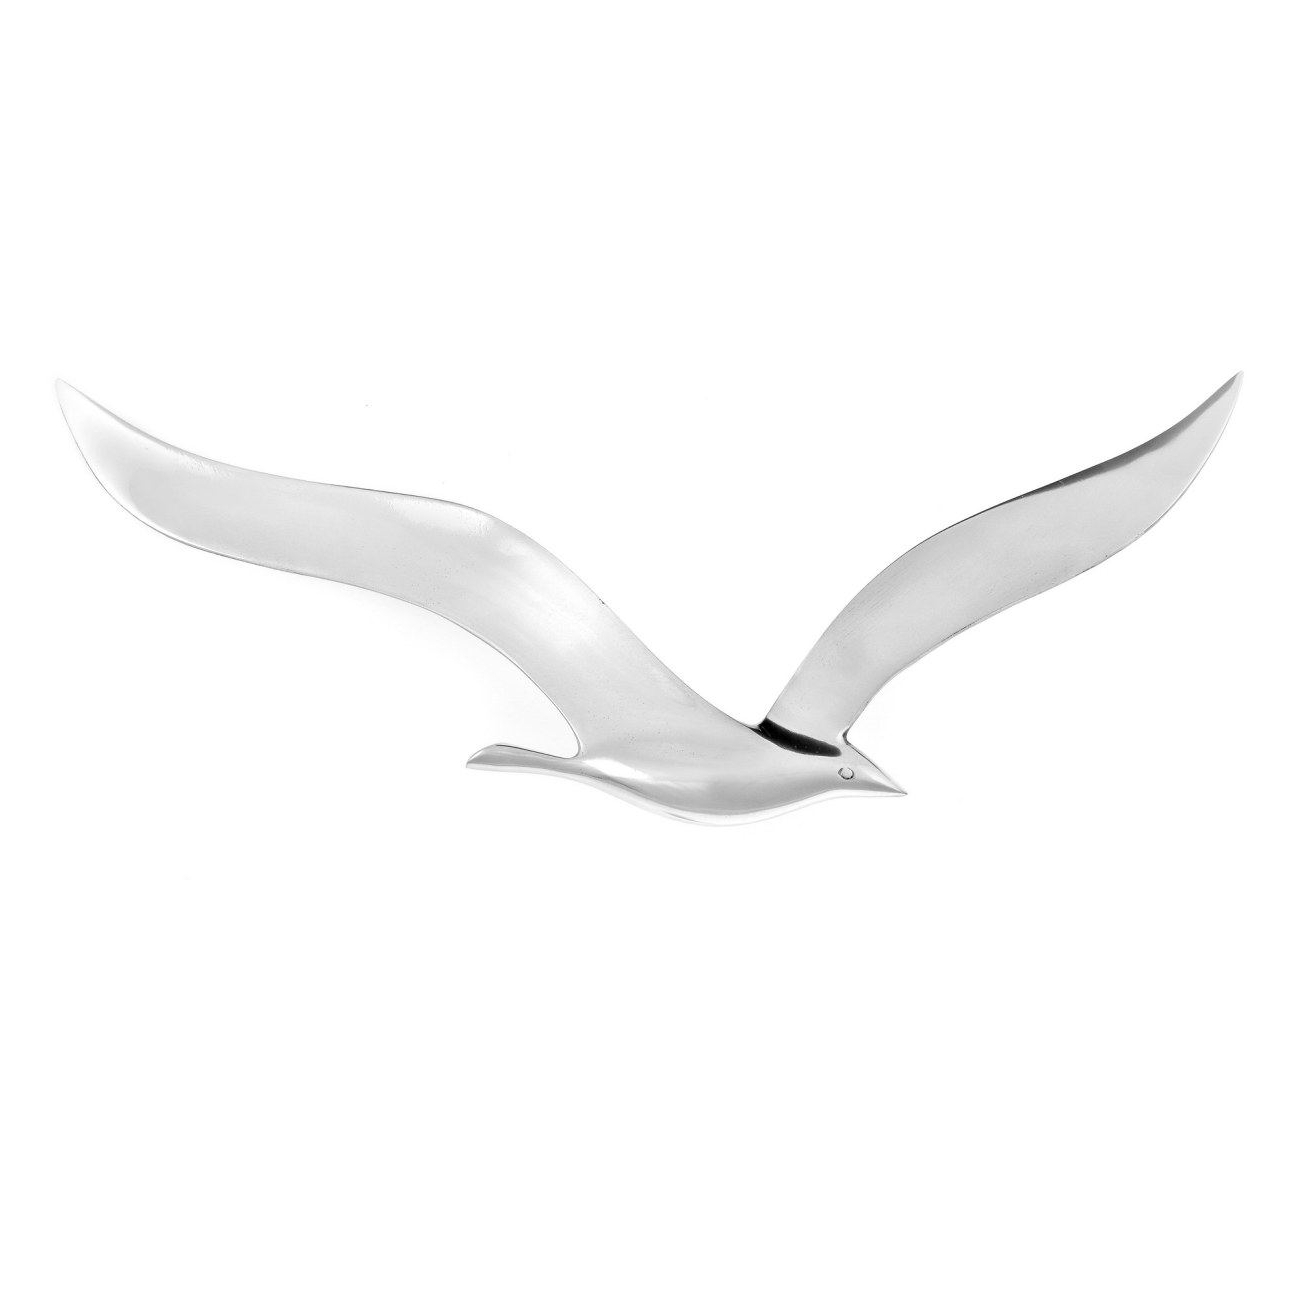 2017 Silver Metal Wall Art Inside Flying Seagull Bird – Handmade Metal Wall Art Decor – Silver, Large (View 15 of 15)